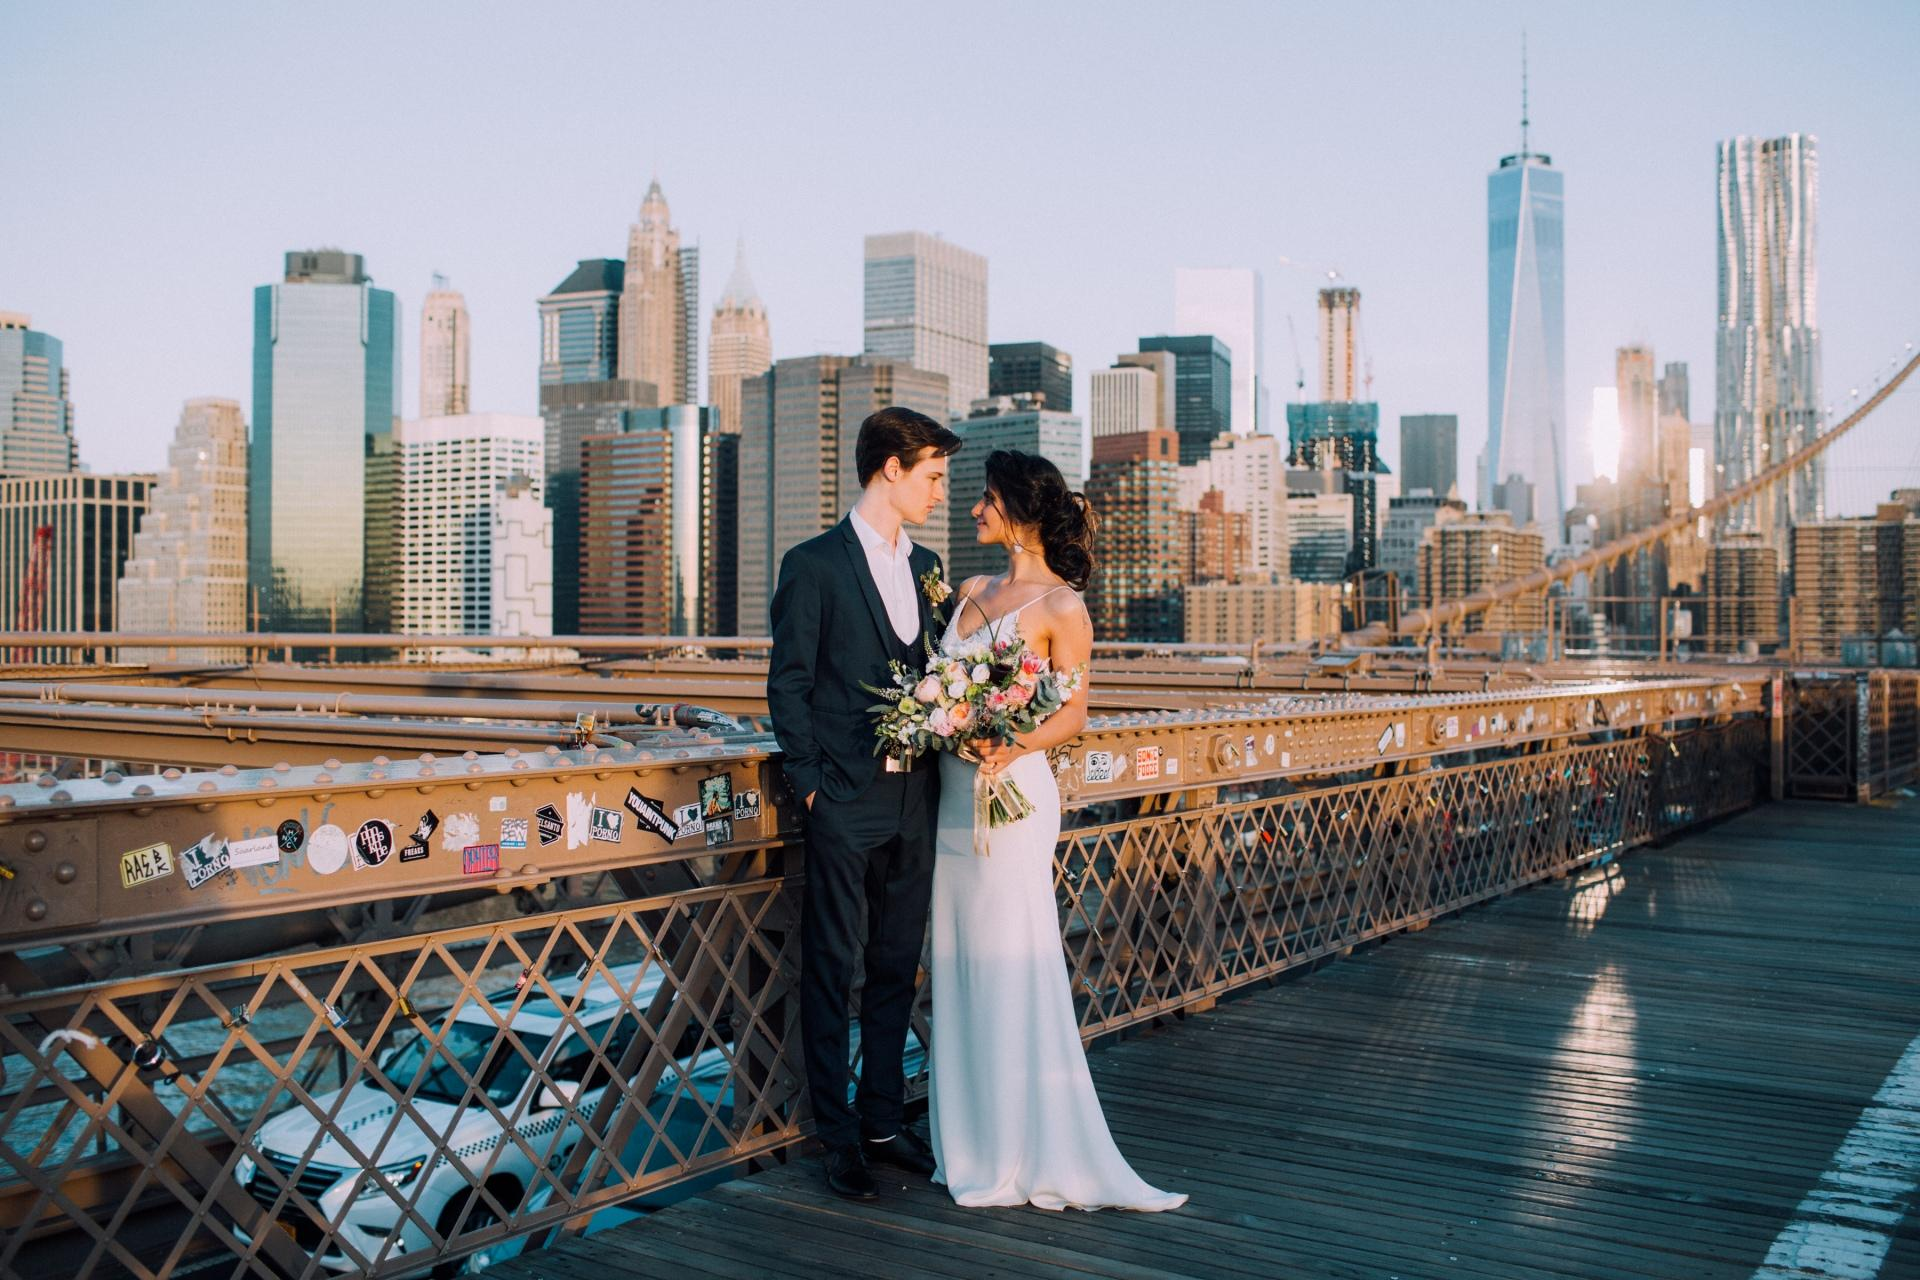 Un Matrimonio a New York<br>è Emozione Unica